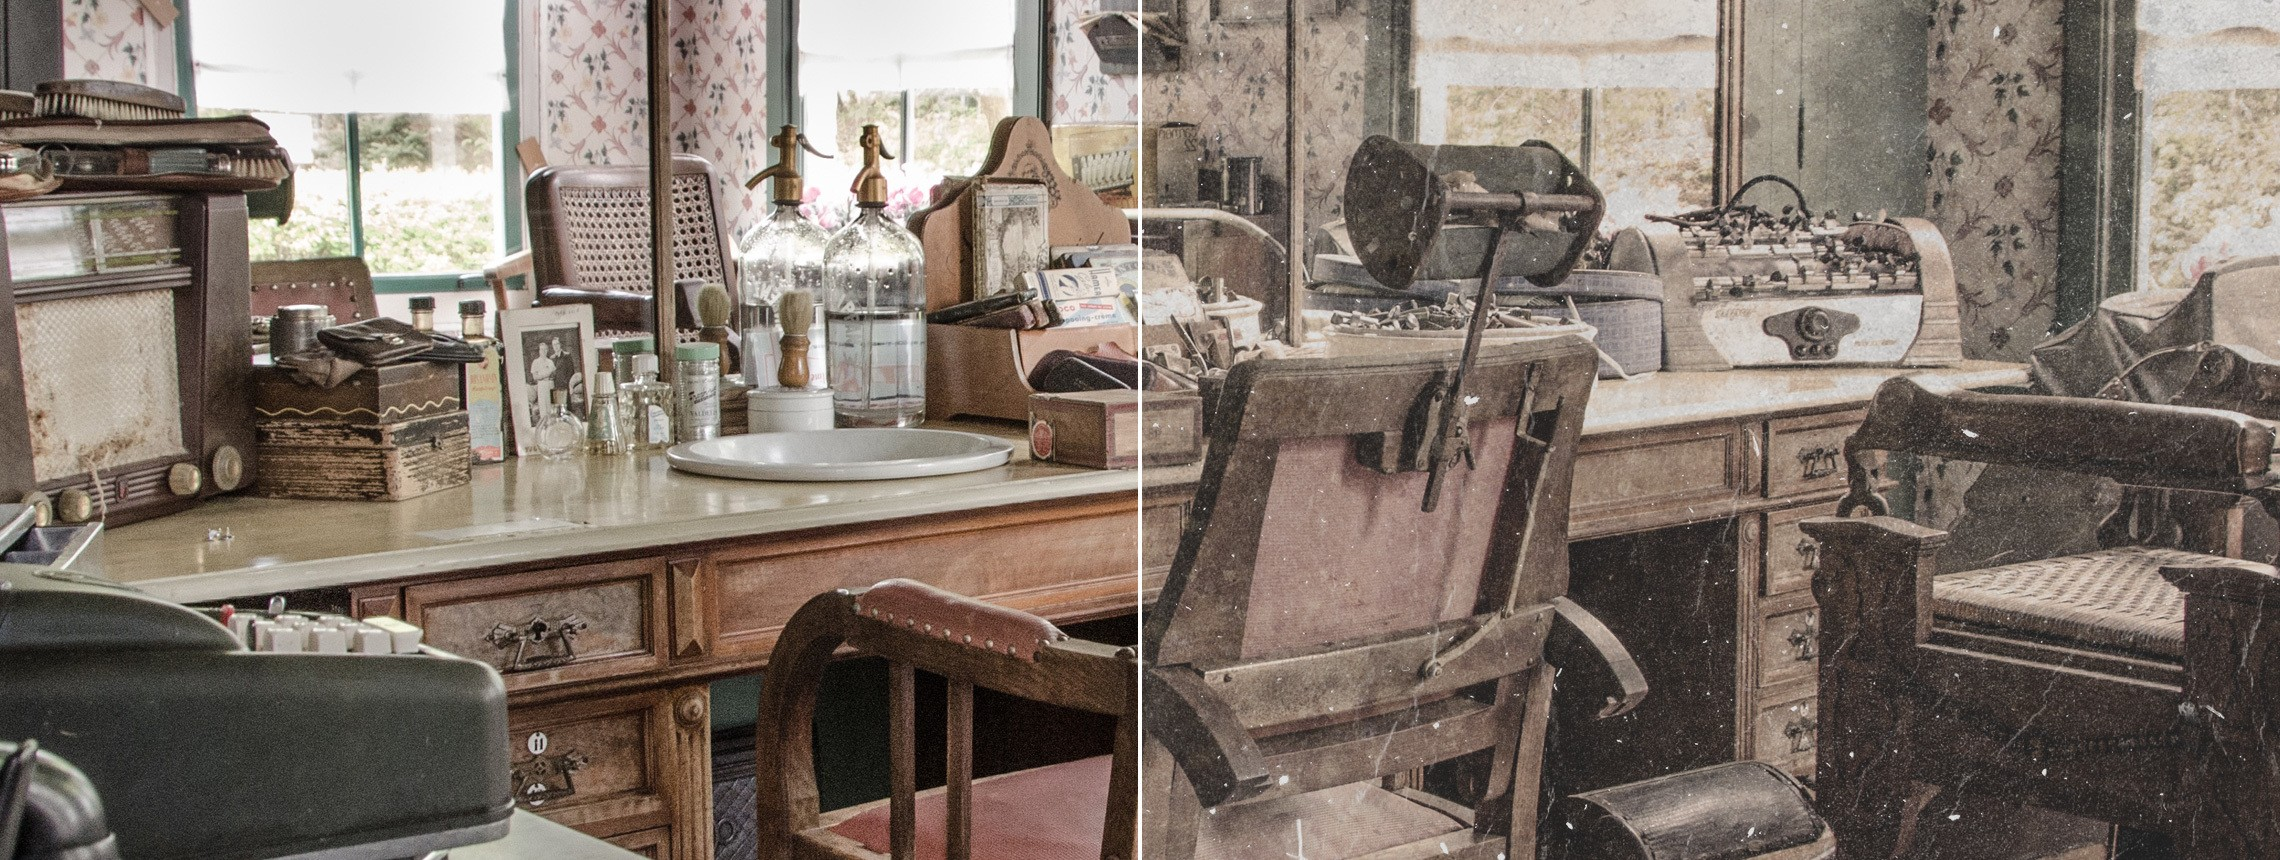 Make Images Vintage with Texture